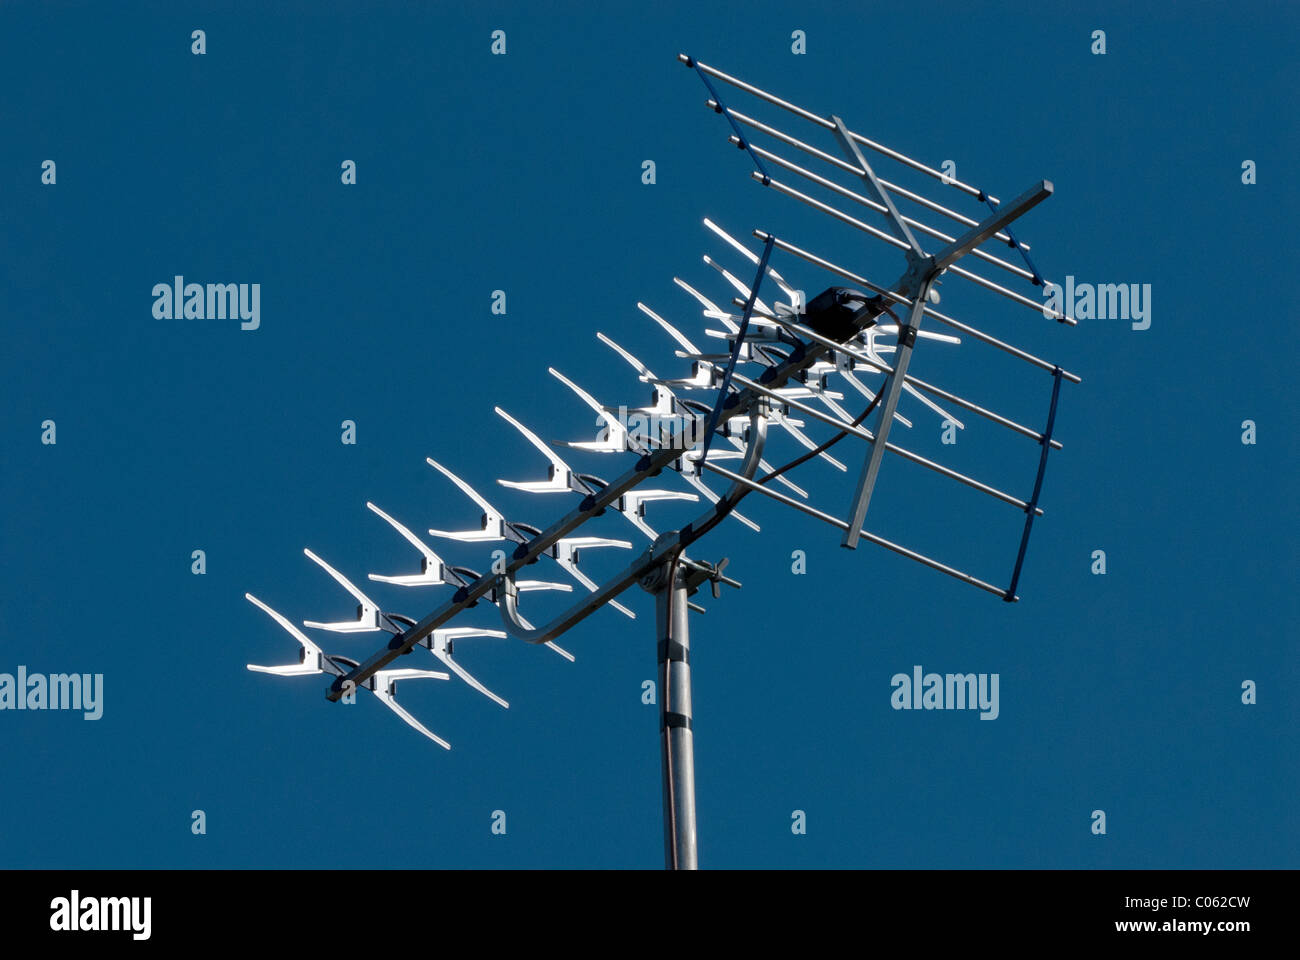 A television aerial or antenna against a plain blue sky.  A good aerial is required for the UK digital switchover. - Stock Image